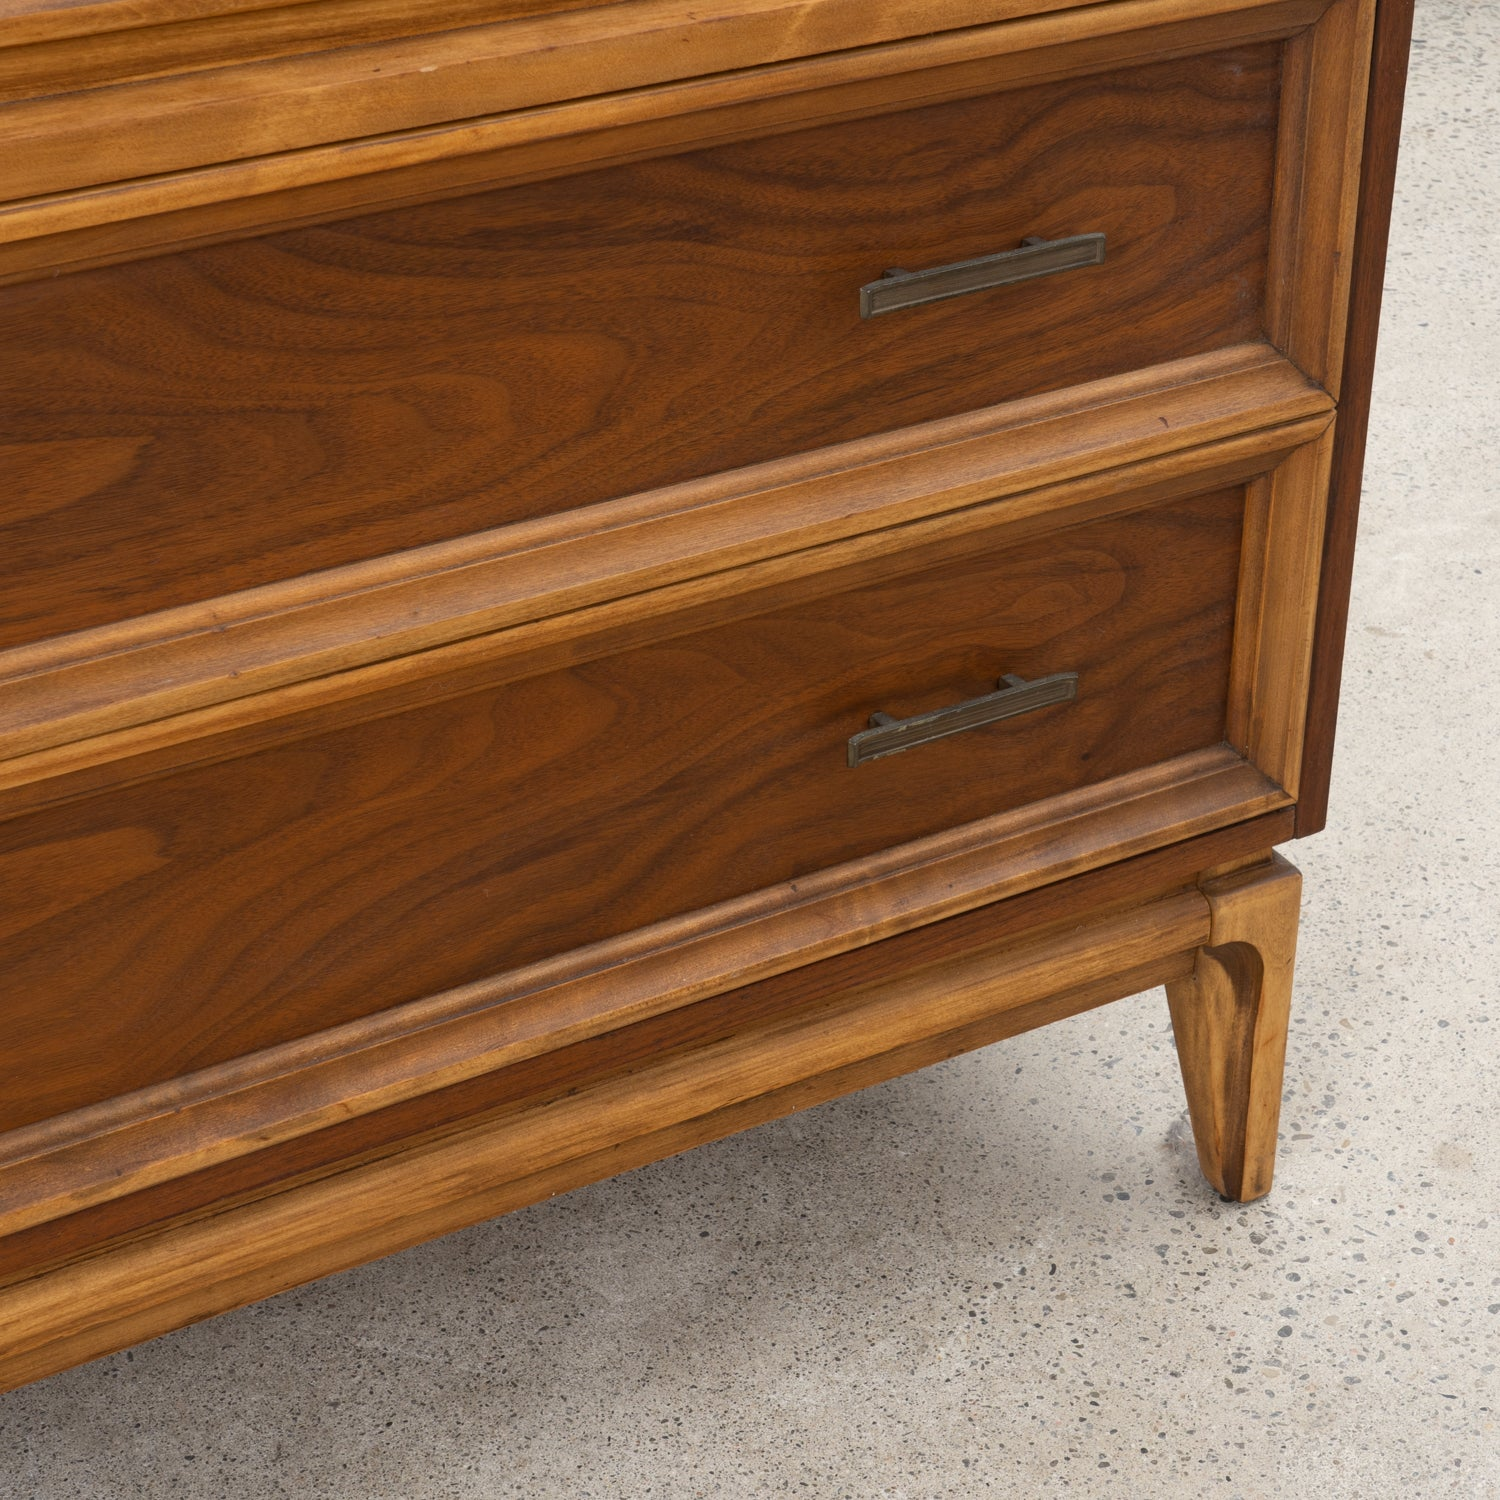 Walnut 5-Drawer Dresser